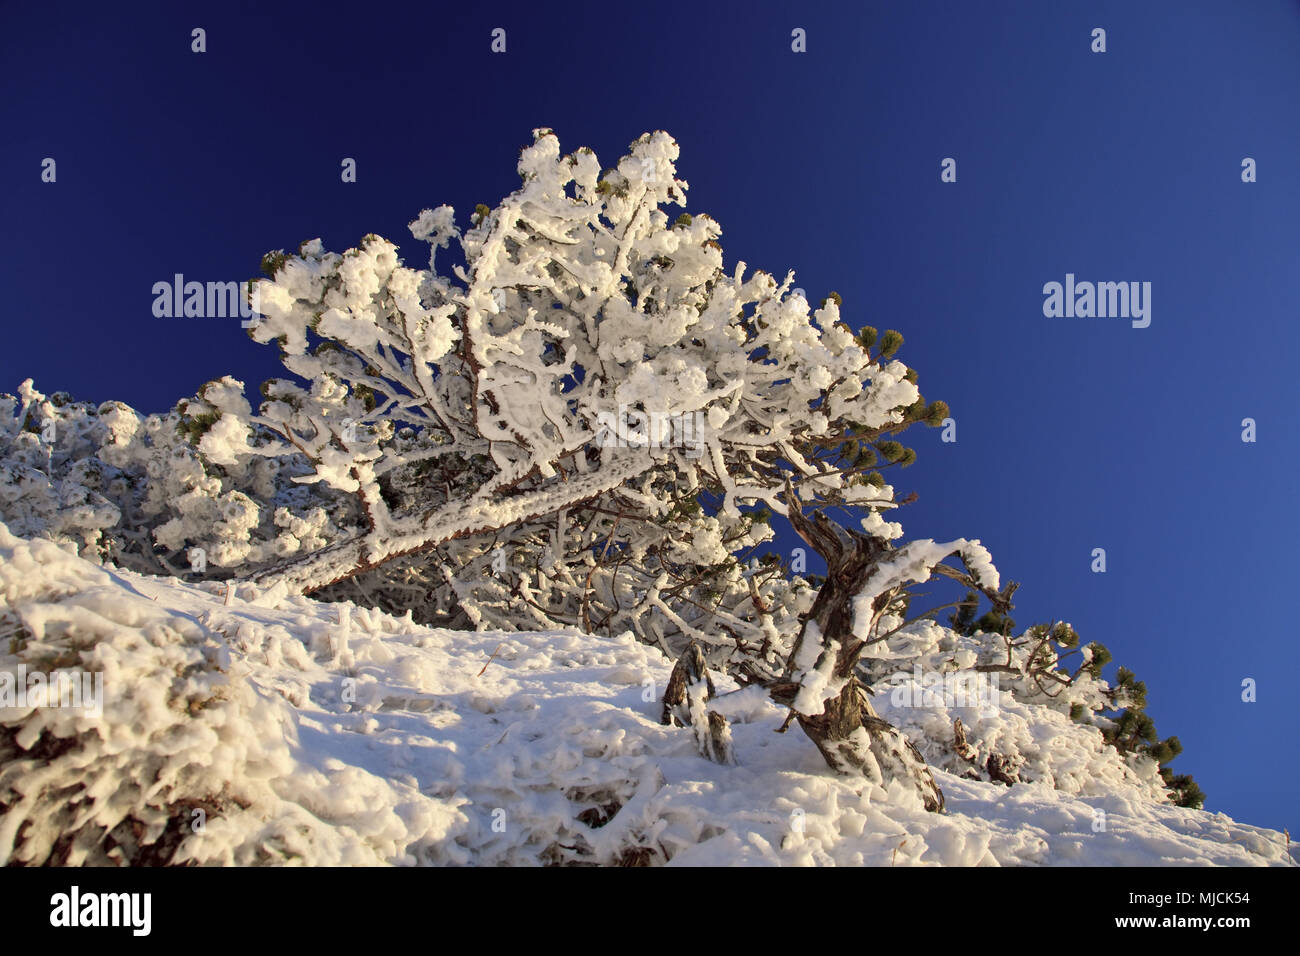 Snow-covered mountain pines, Herzogstand, Bavarian Alpine Foreland, alps, Alpine foreland, Bavarian uplands, Upper Bavaria, Bavaria, South Germany, Germany, - Stock Image